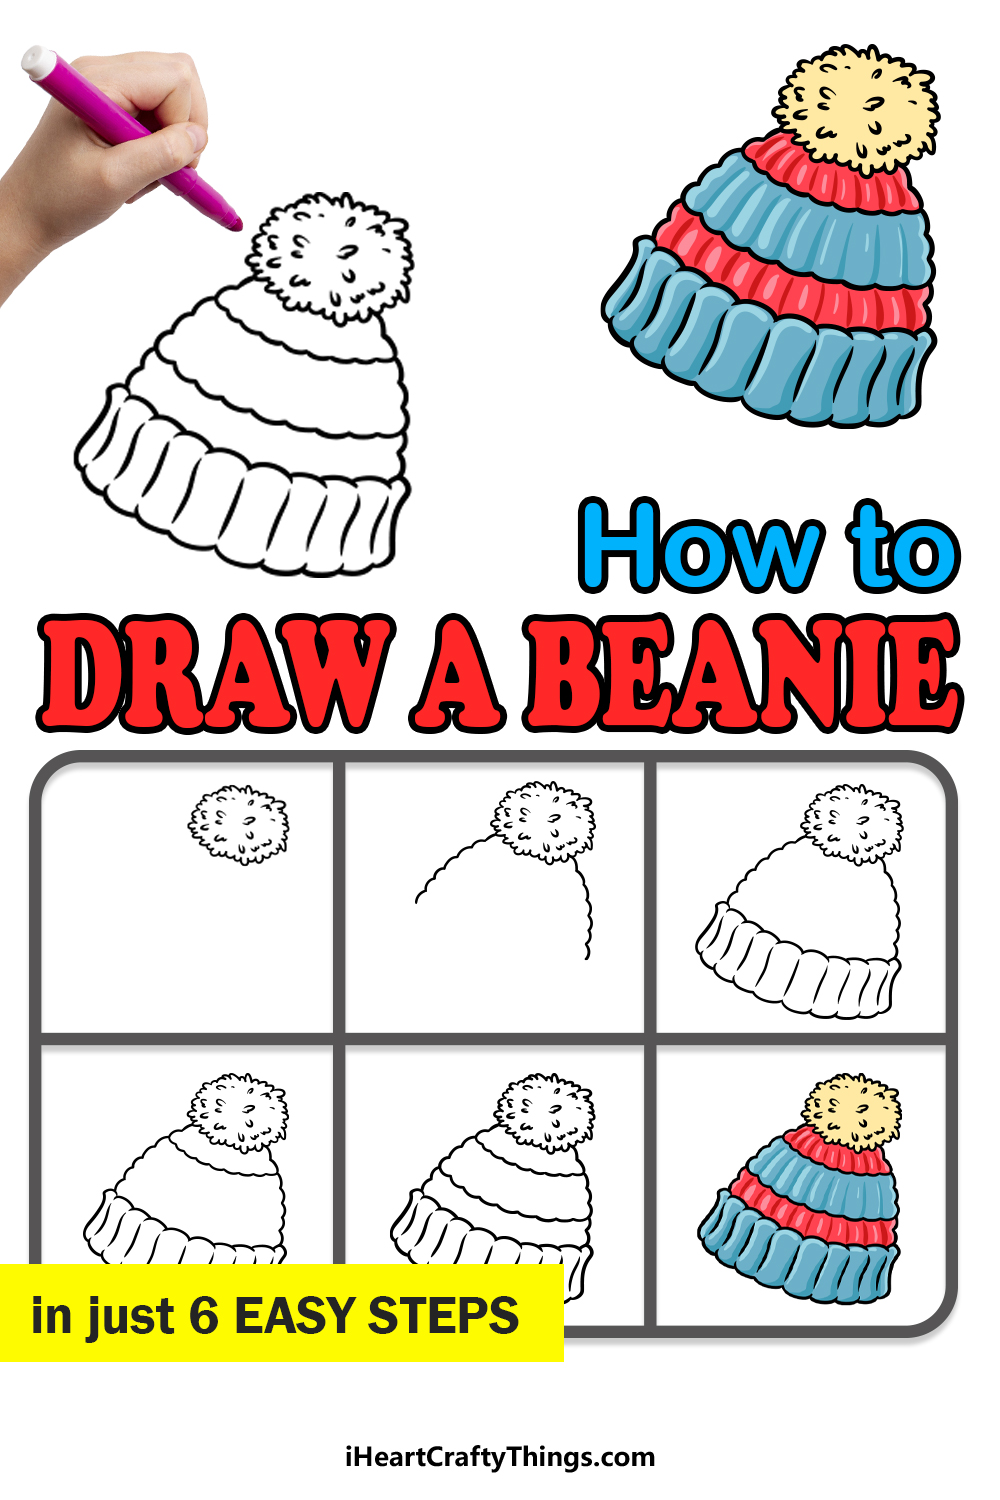 how to draw a beanie in 6 easy steps